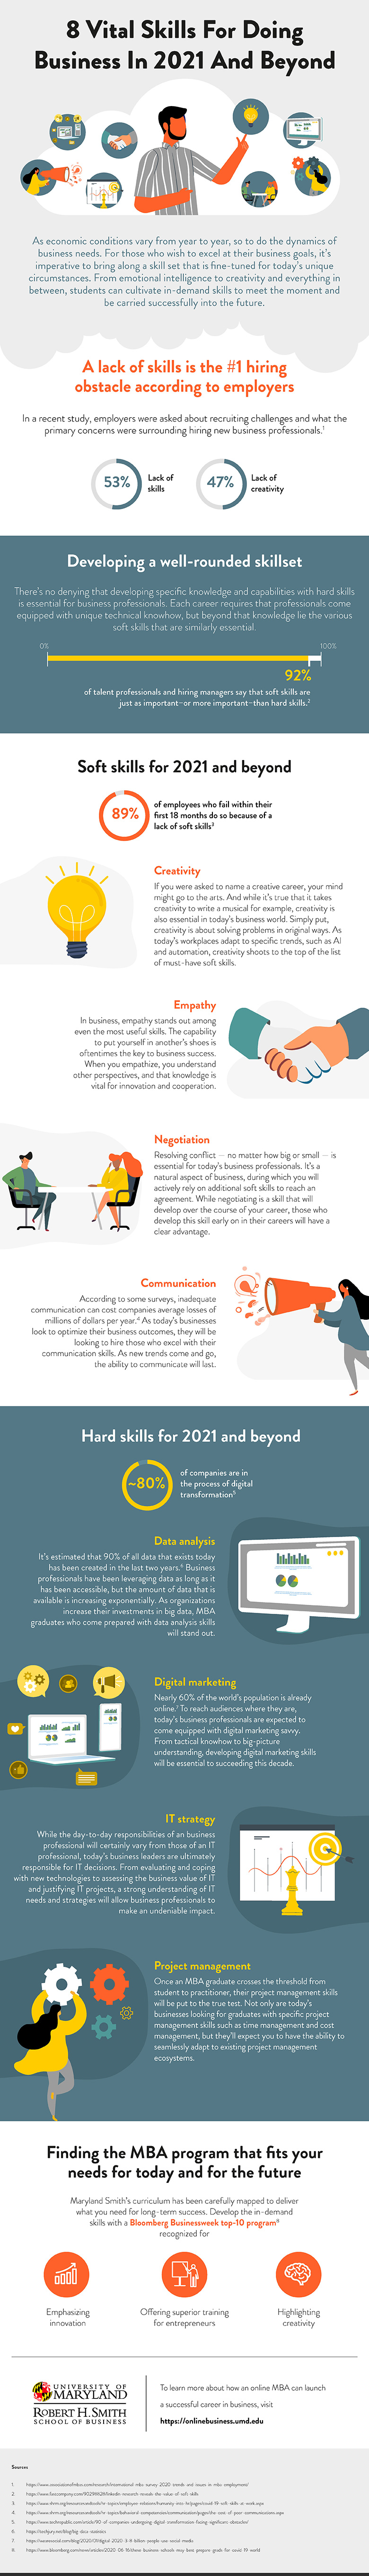 An infographic about developing attractive hard and soft skills by UMD Smith School of Business.